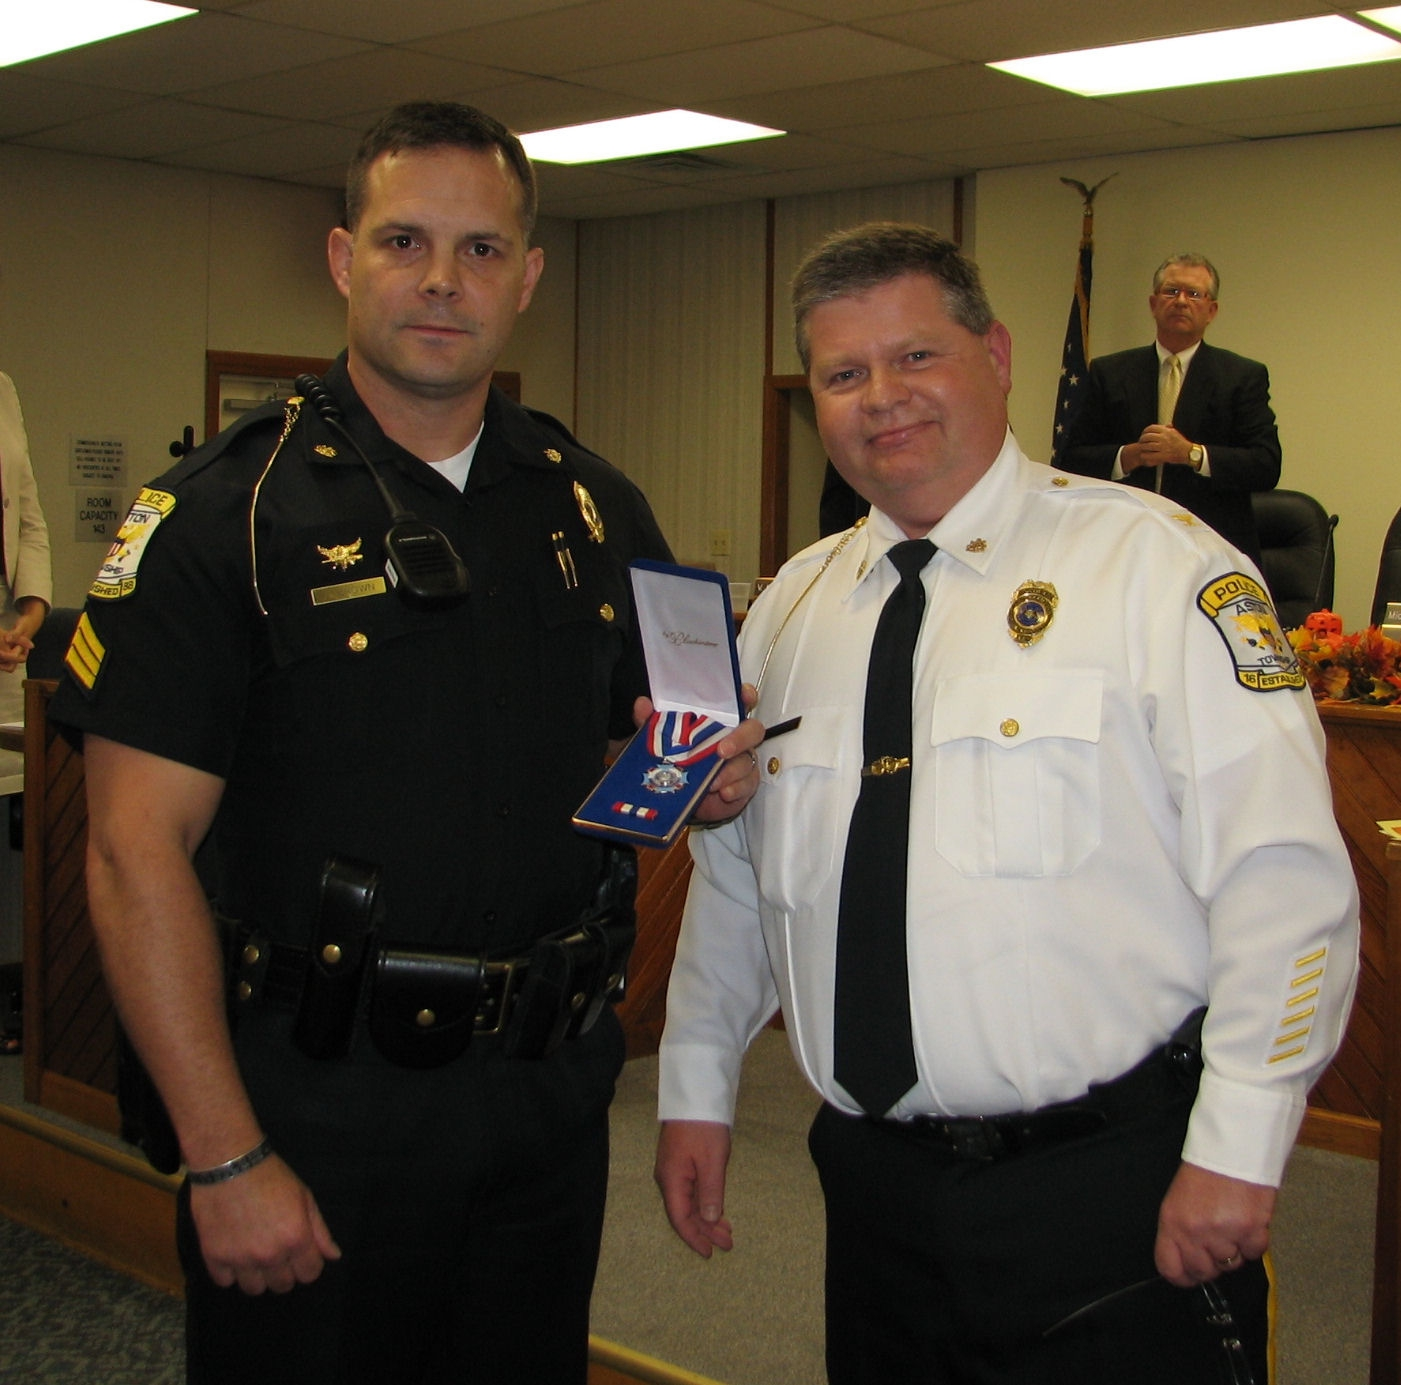 Police sergeant honored for courage in high-profile standoff with criminal